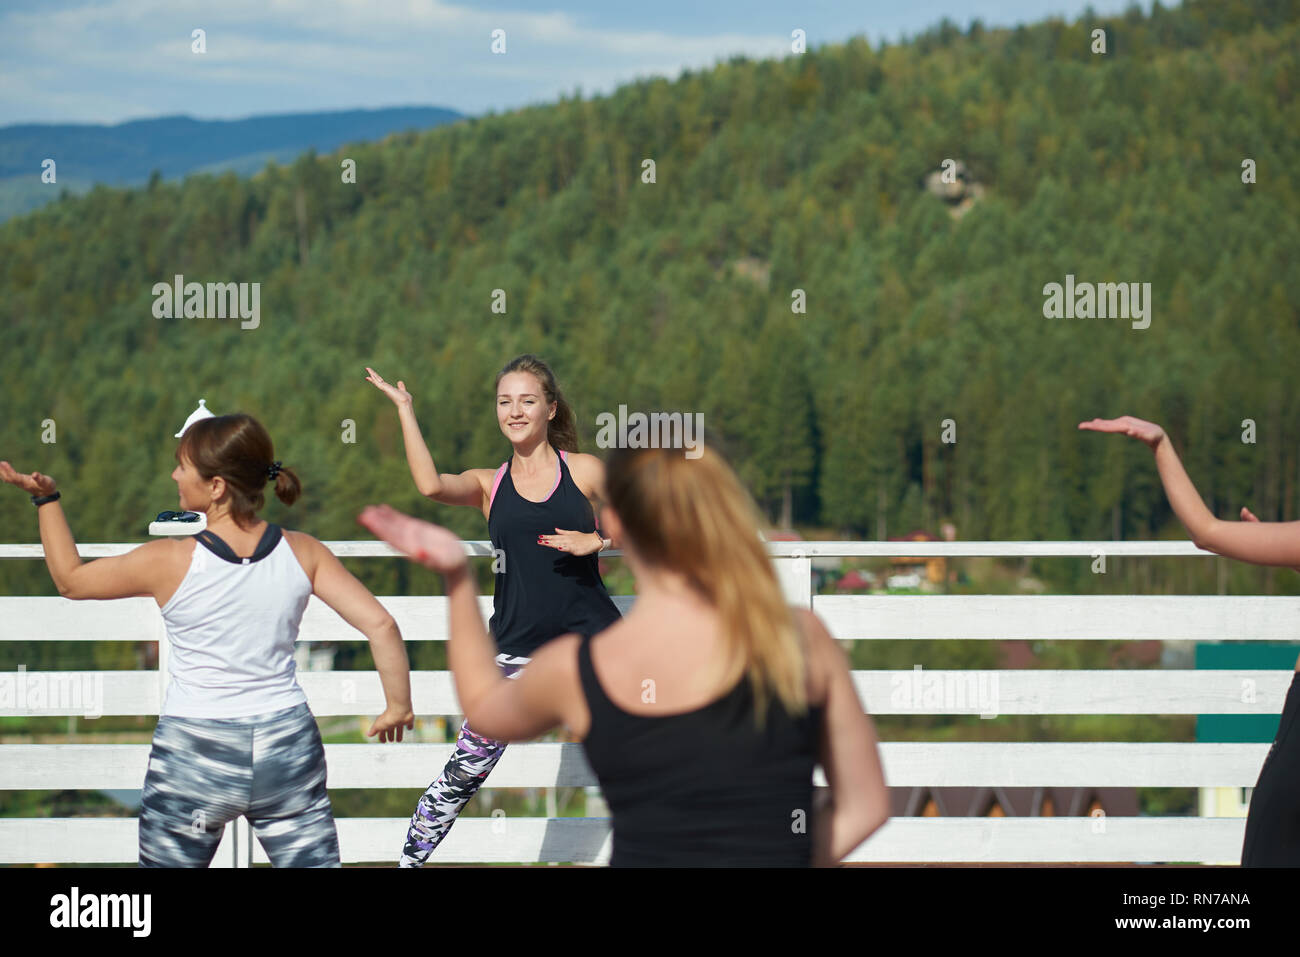 Professional fitness coach training sports, showing moves to women. Group repeating moves, doing exercises and practicing fitness on fresh air. Women wearing in sportswear. - Stock Image